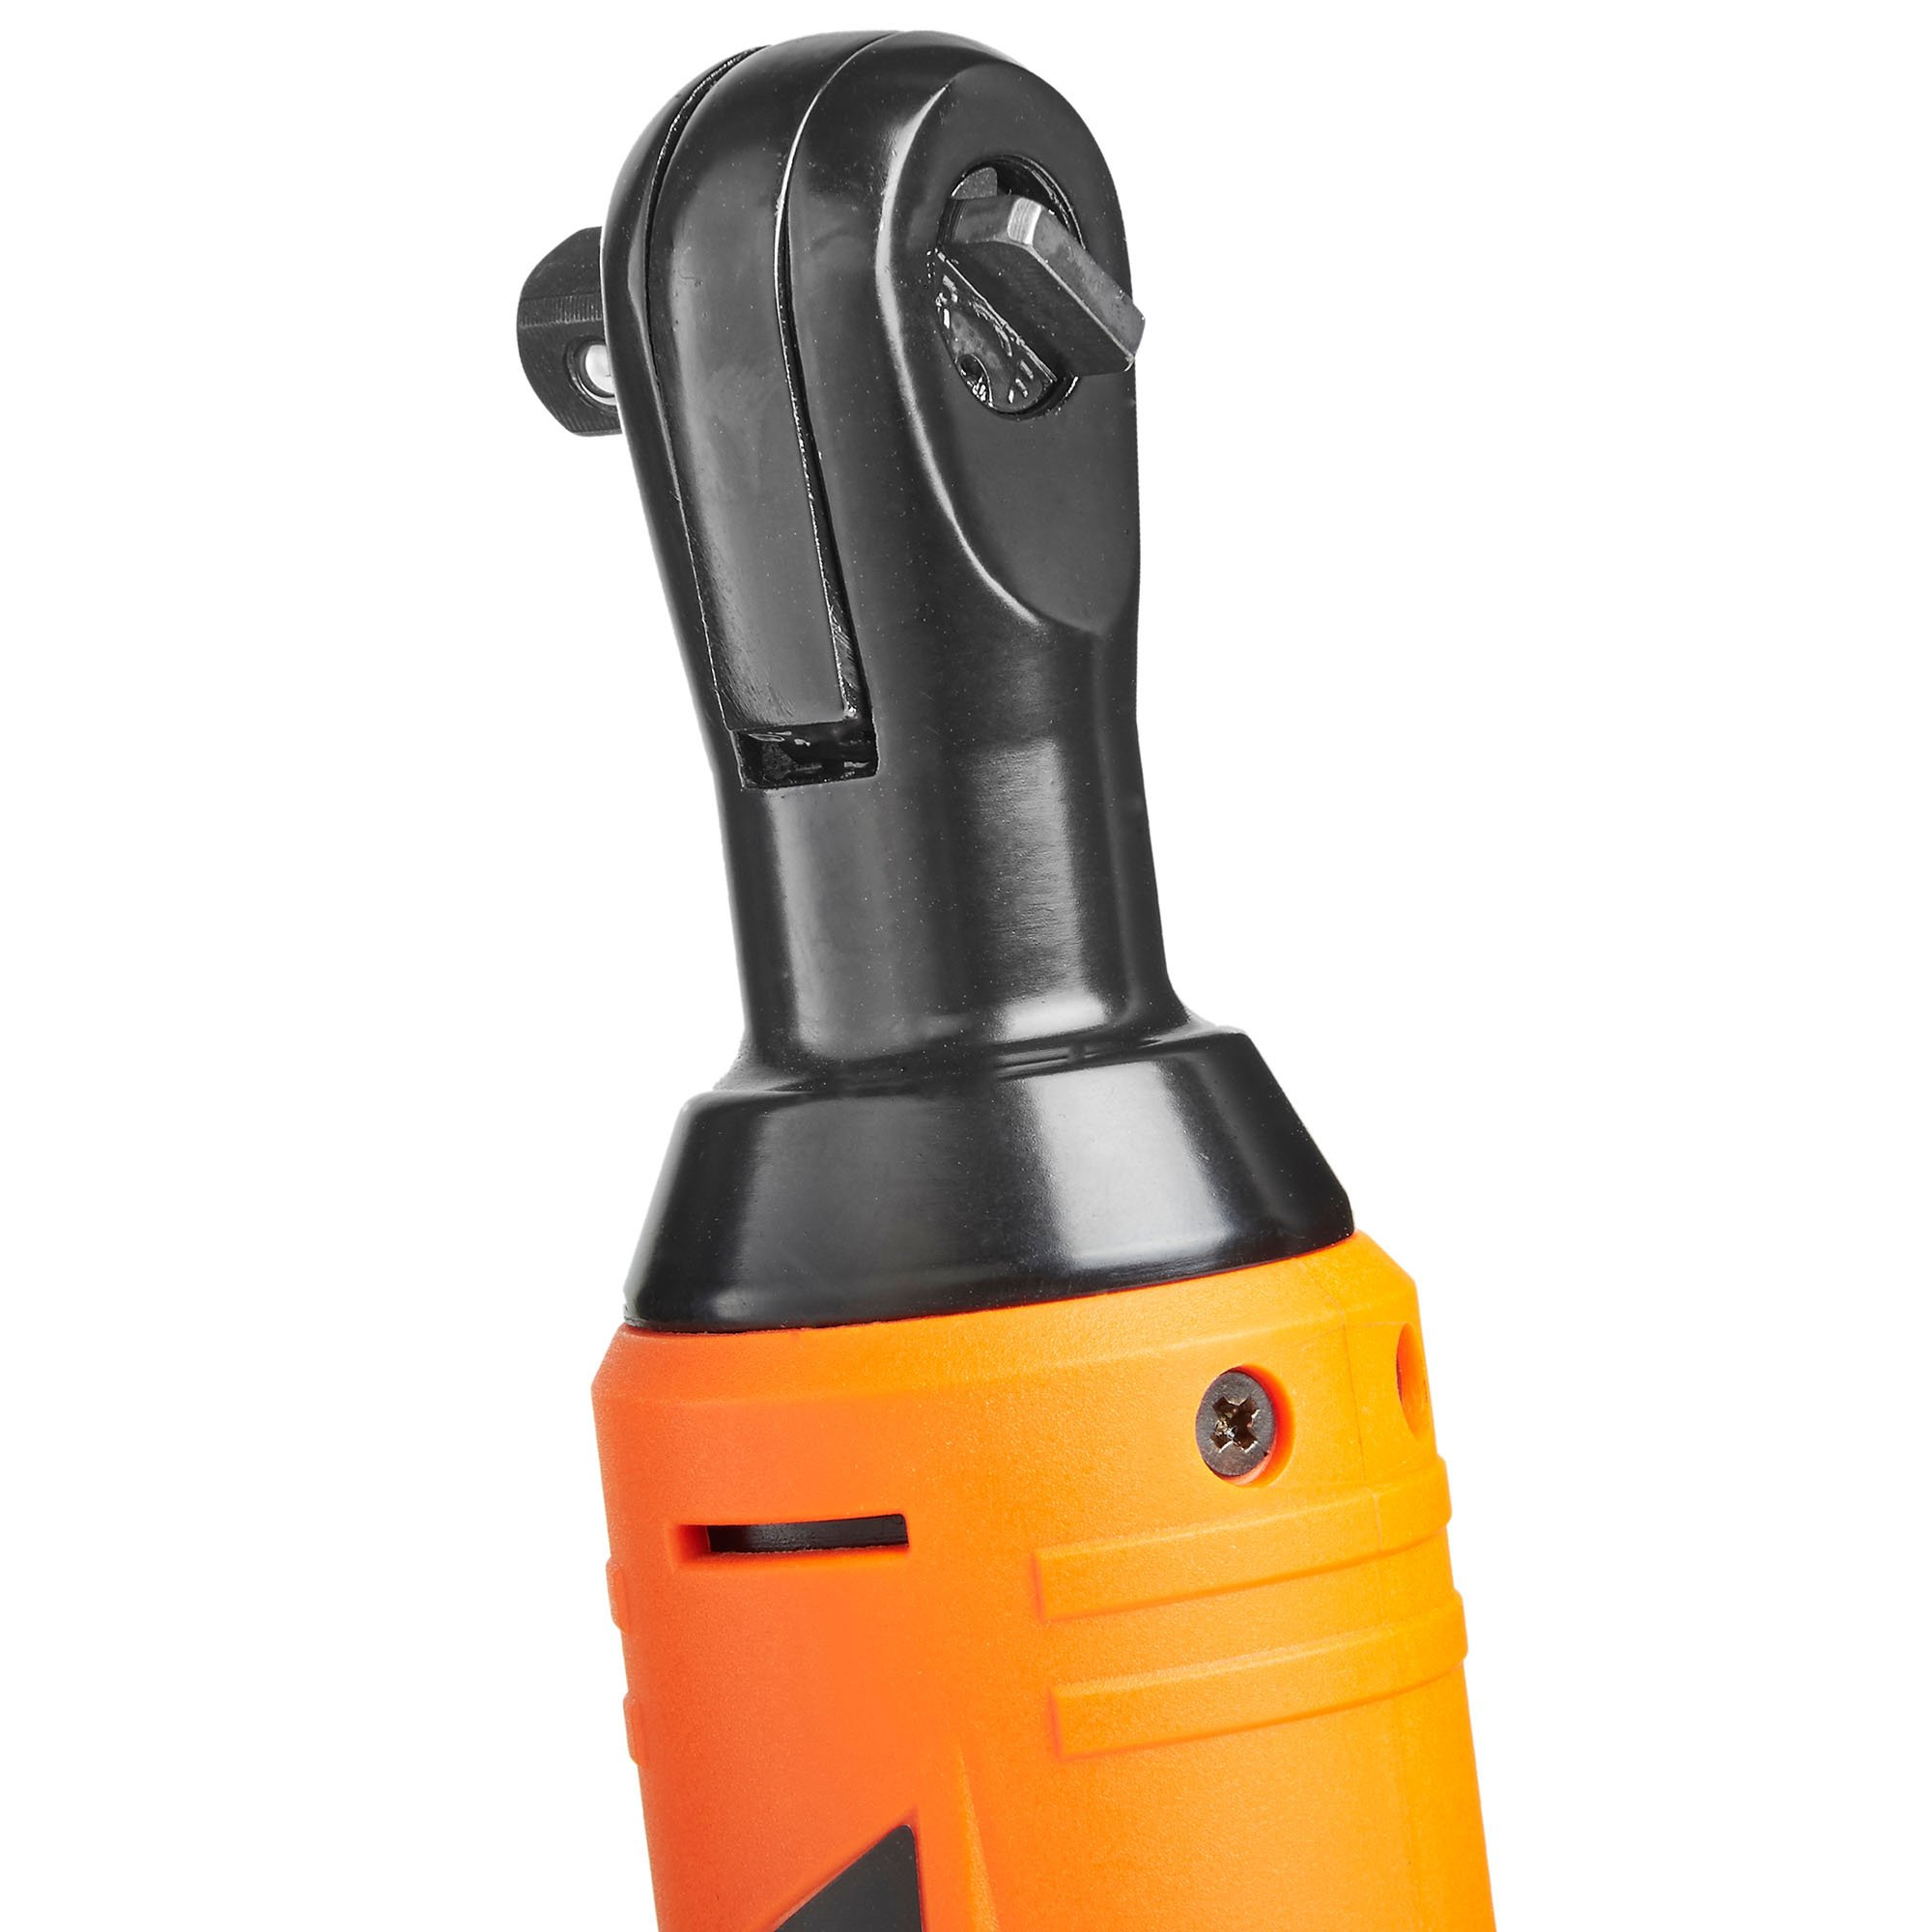 VonHaus Cordless Electric Ratchet Wrench Set with 12V Lithium-Ion Battery and Charger Kit 3/8'' Drive 15/145US by VonHaus (Image #2)